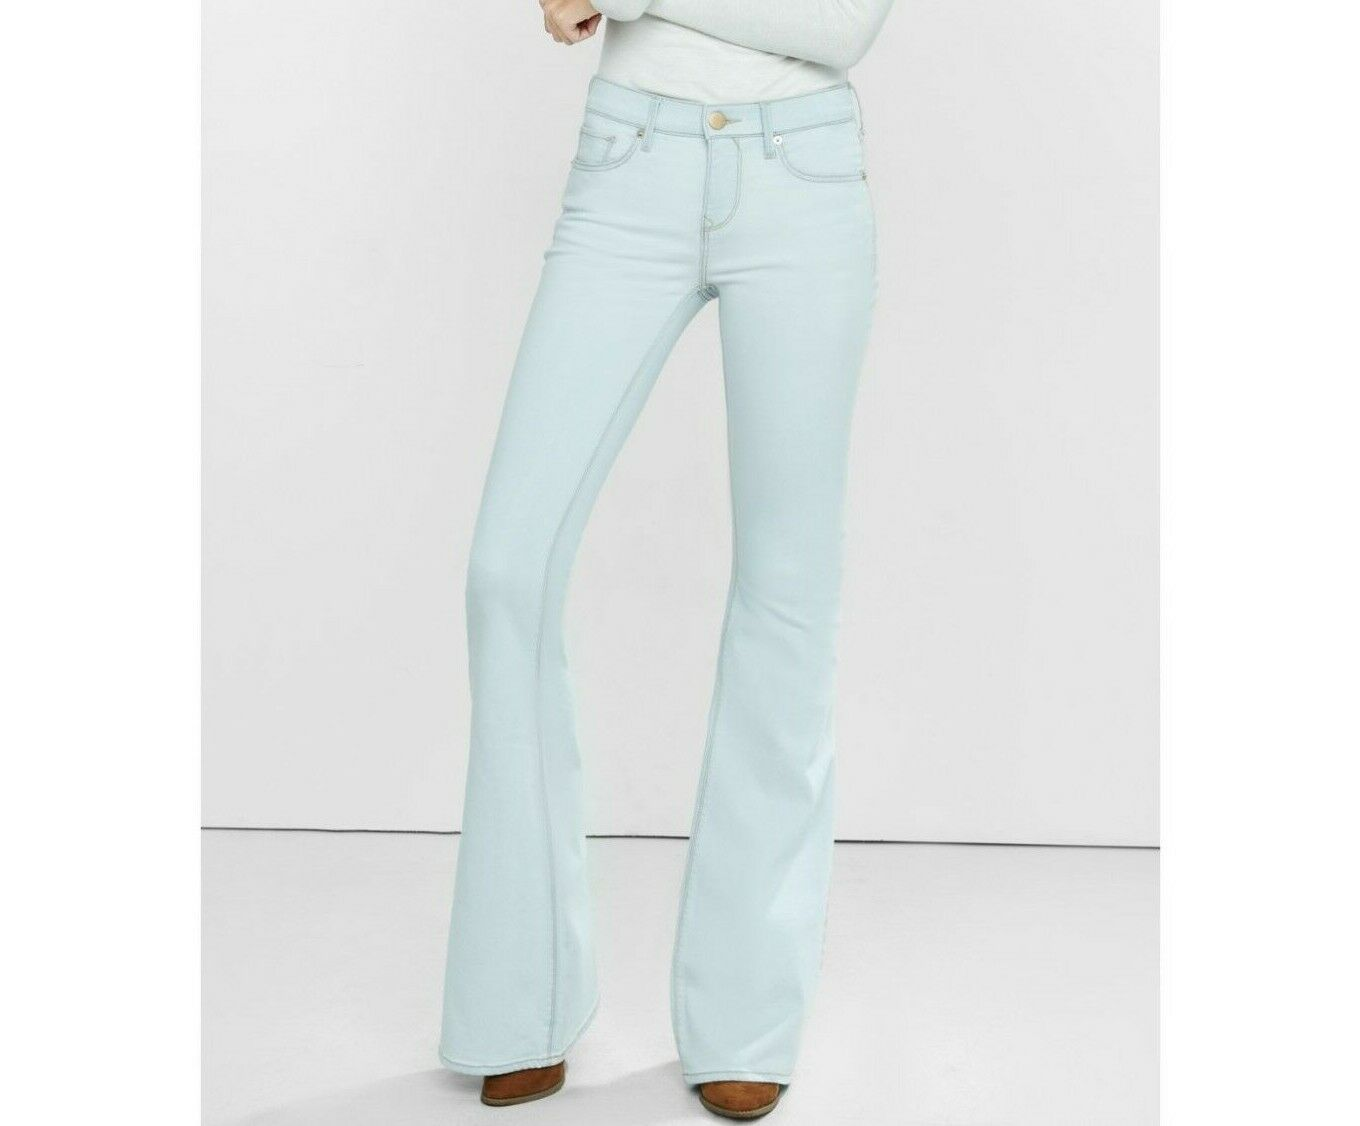 Express Bell Flare Mid Rise Light Wash Jeans sz 10 NEW Ret.